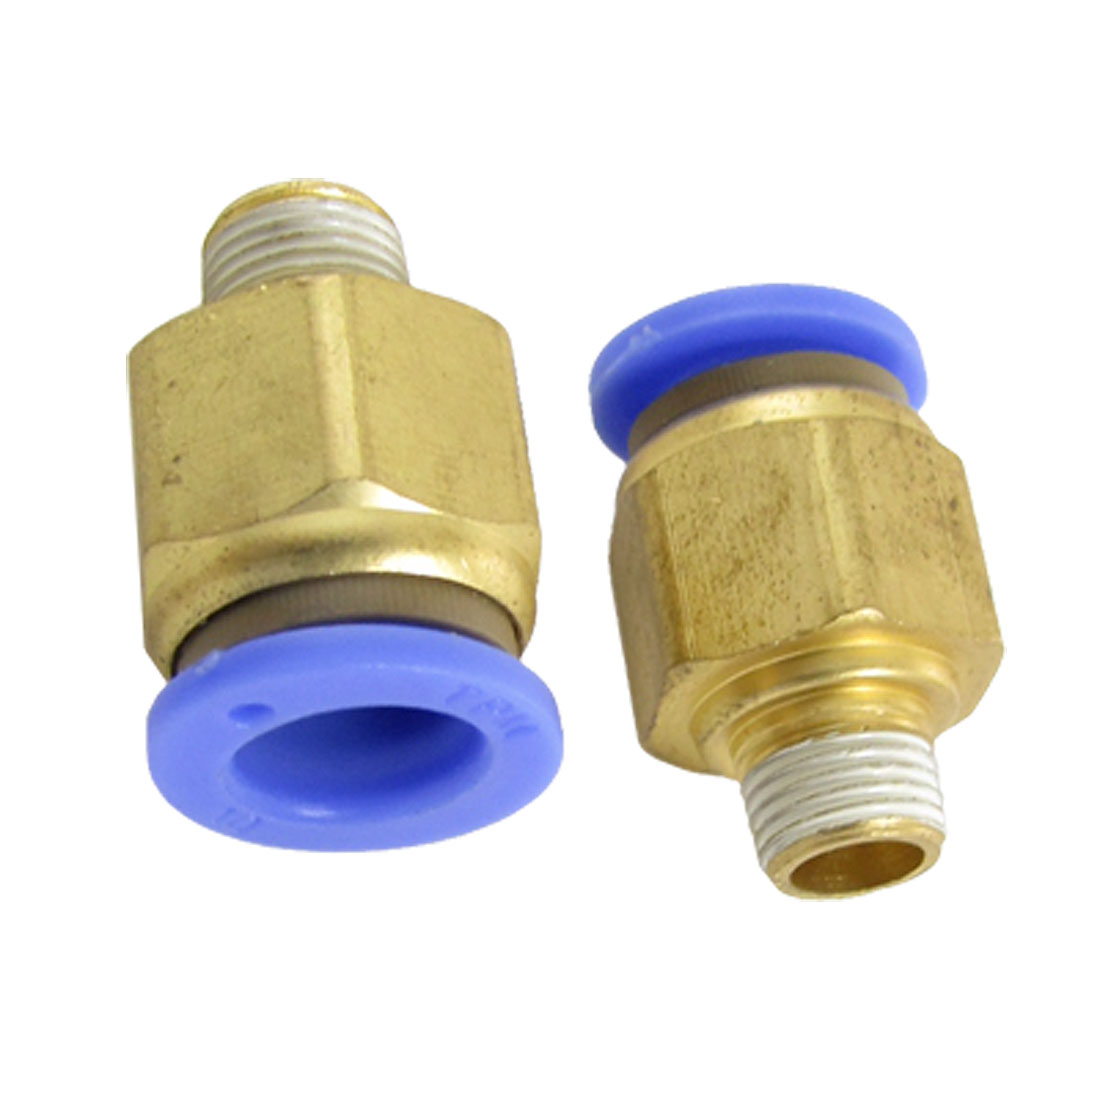 10mm Pneumatic Tube Push to Connect Quick Fittings 2 Pcs